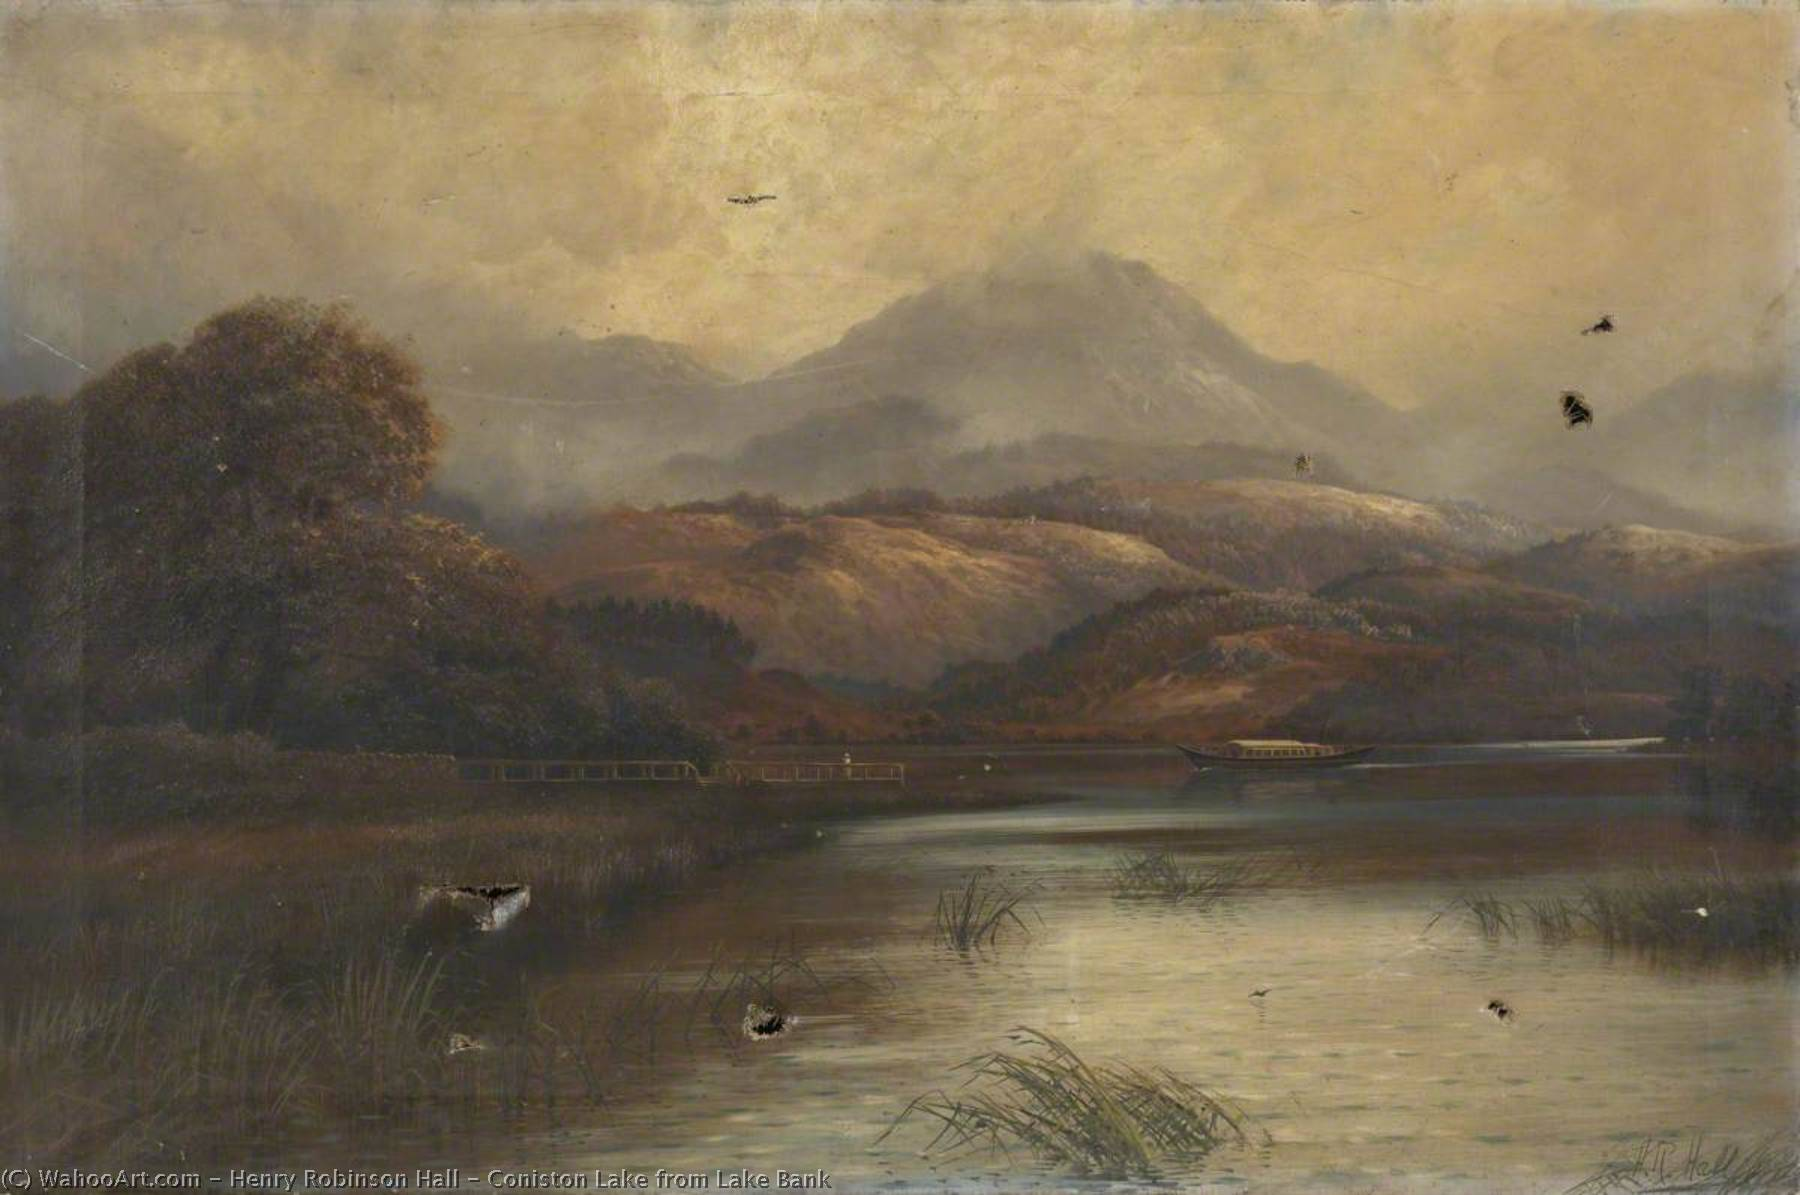 Coniston Lake from Lake Bank, 1900 by Henry Robinson Hall | Paintings Reproductions Henry Robinson Hall | ArtsDot.com